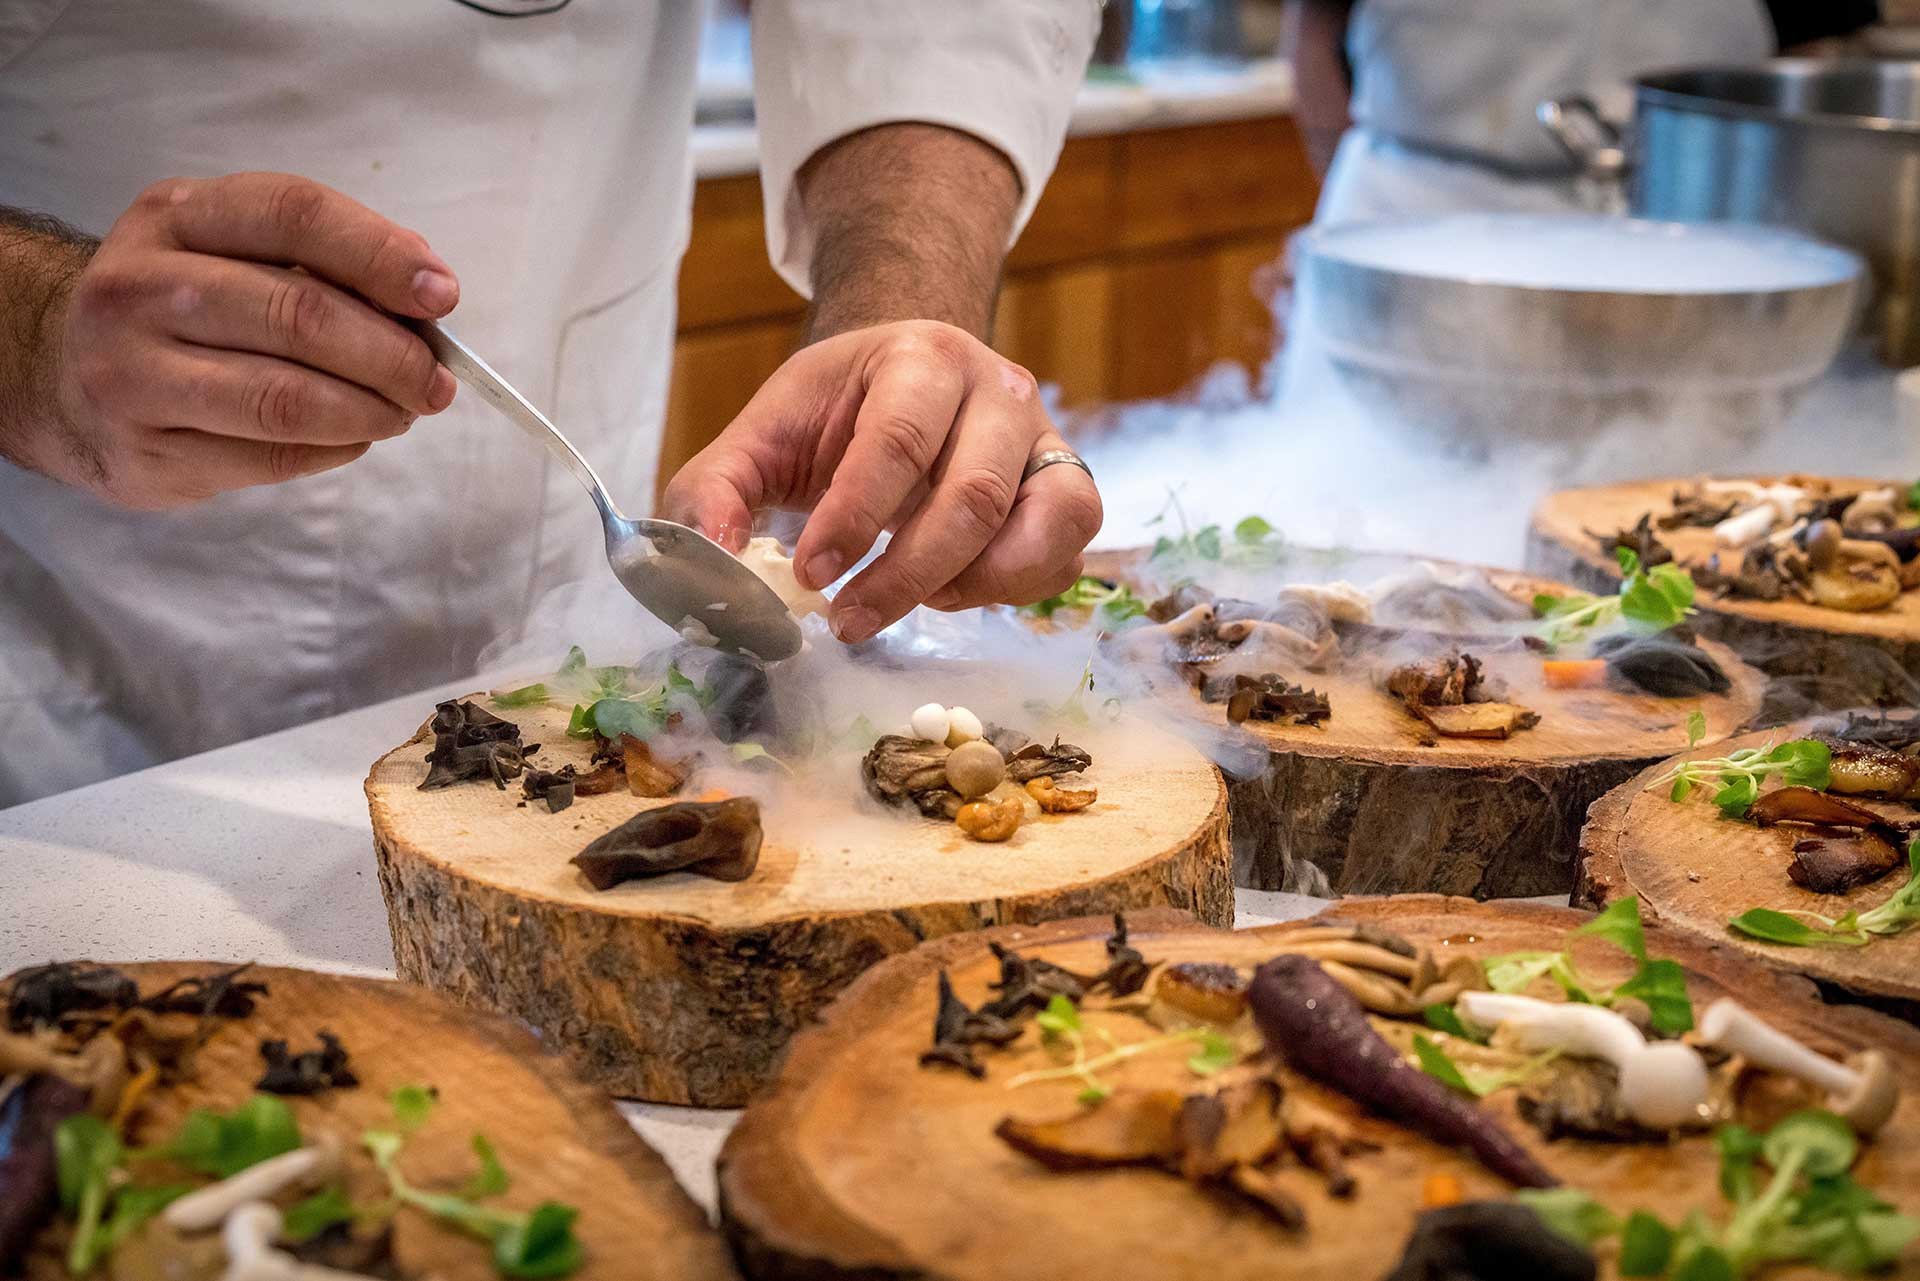 chef plating up food in a commercial kitchen